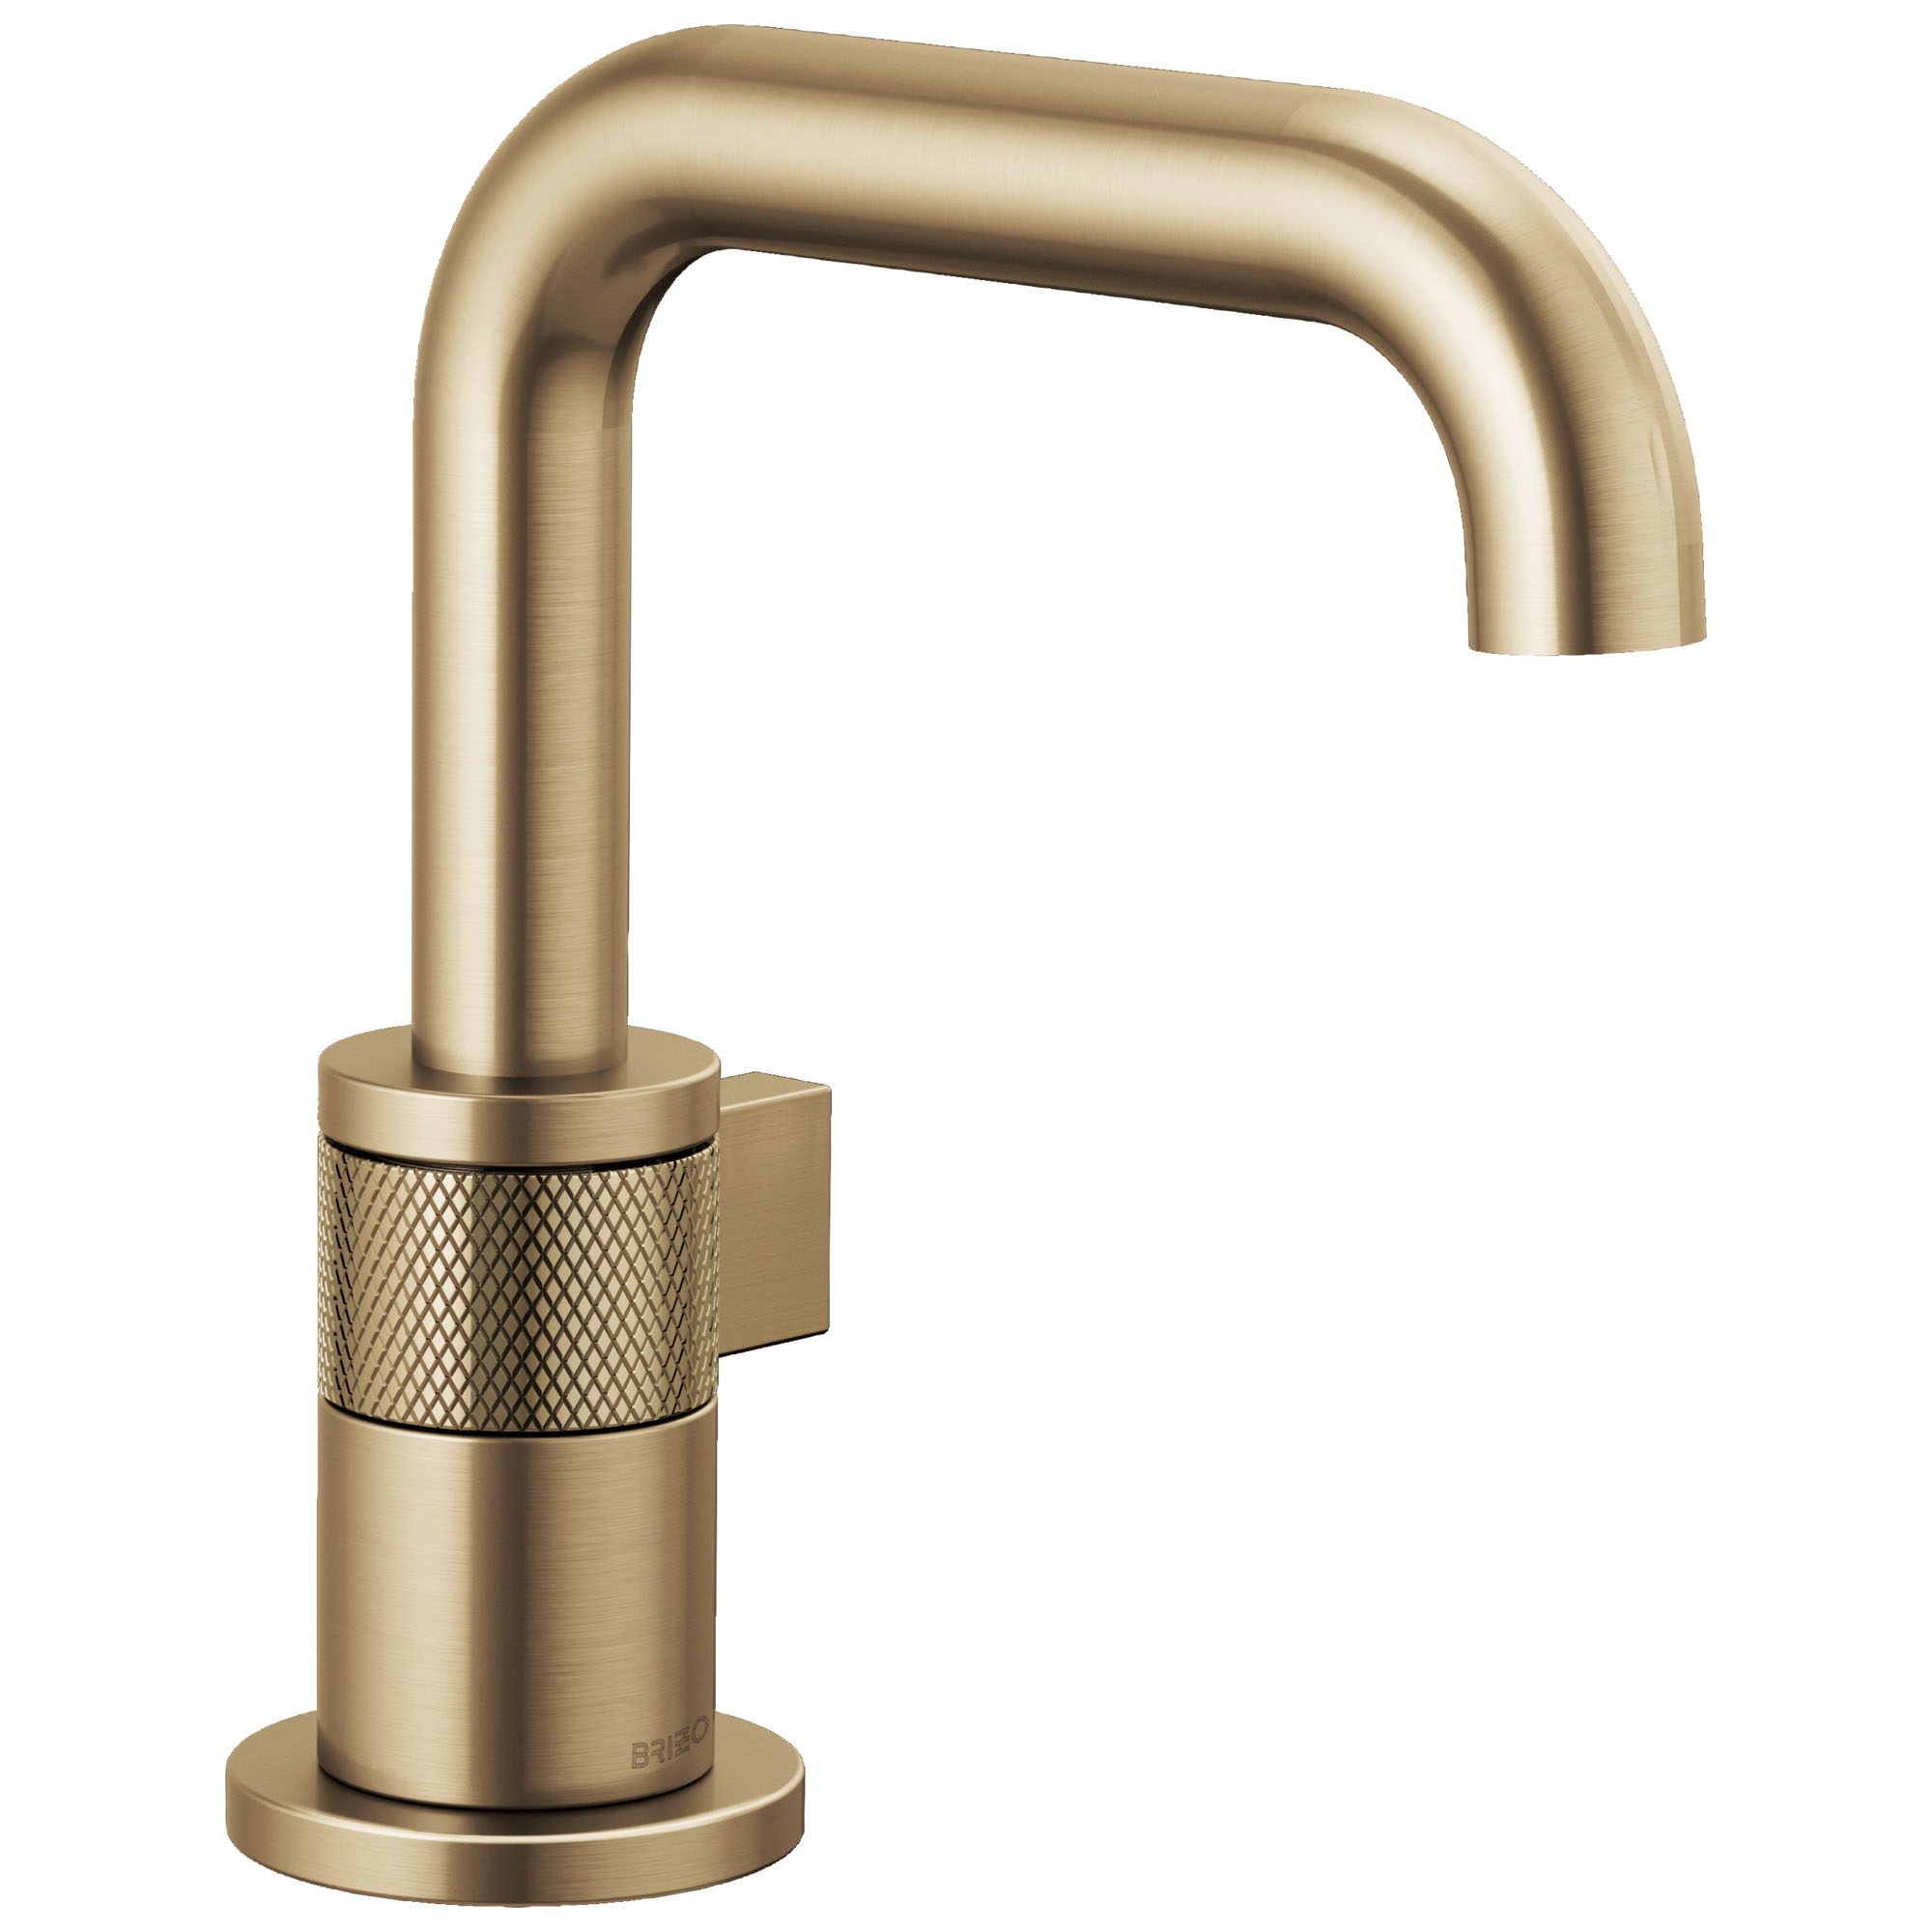 Faucet Handles for your Bathroom Sink - on sale | LuxHome